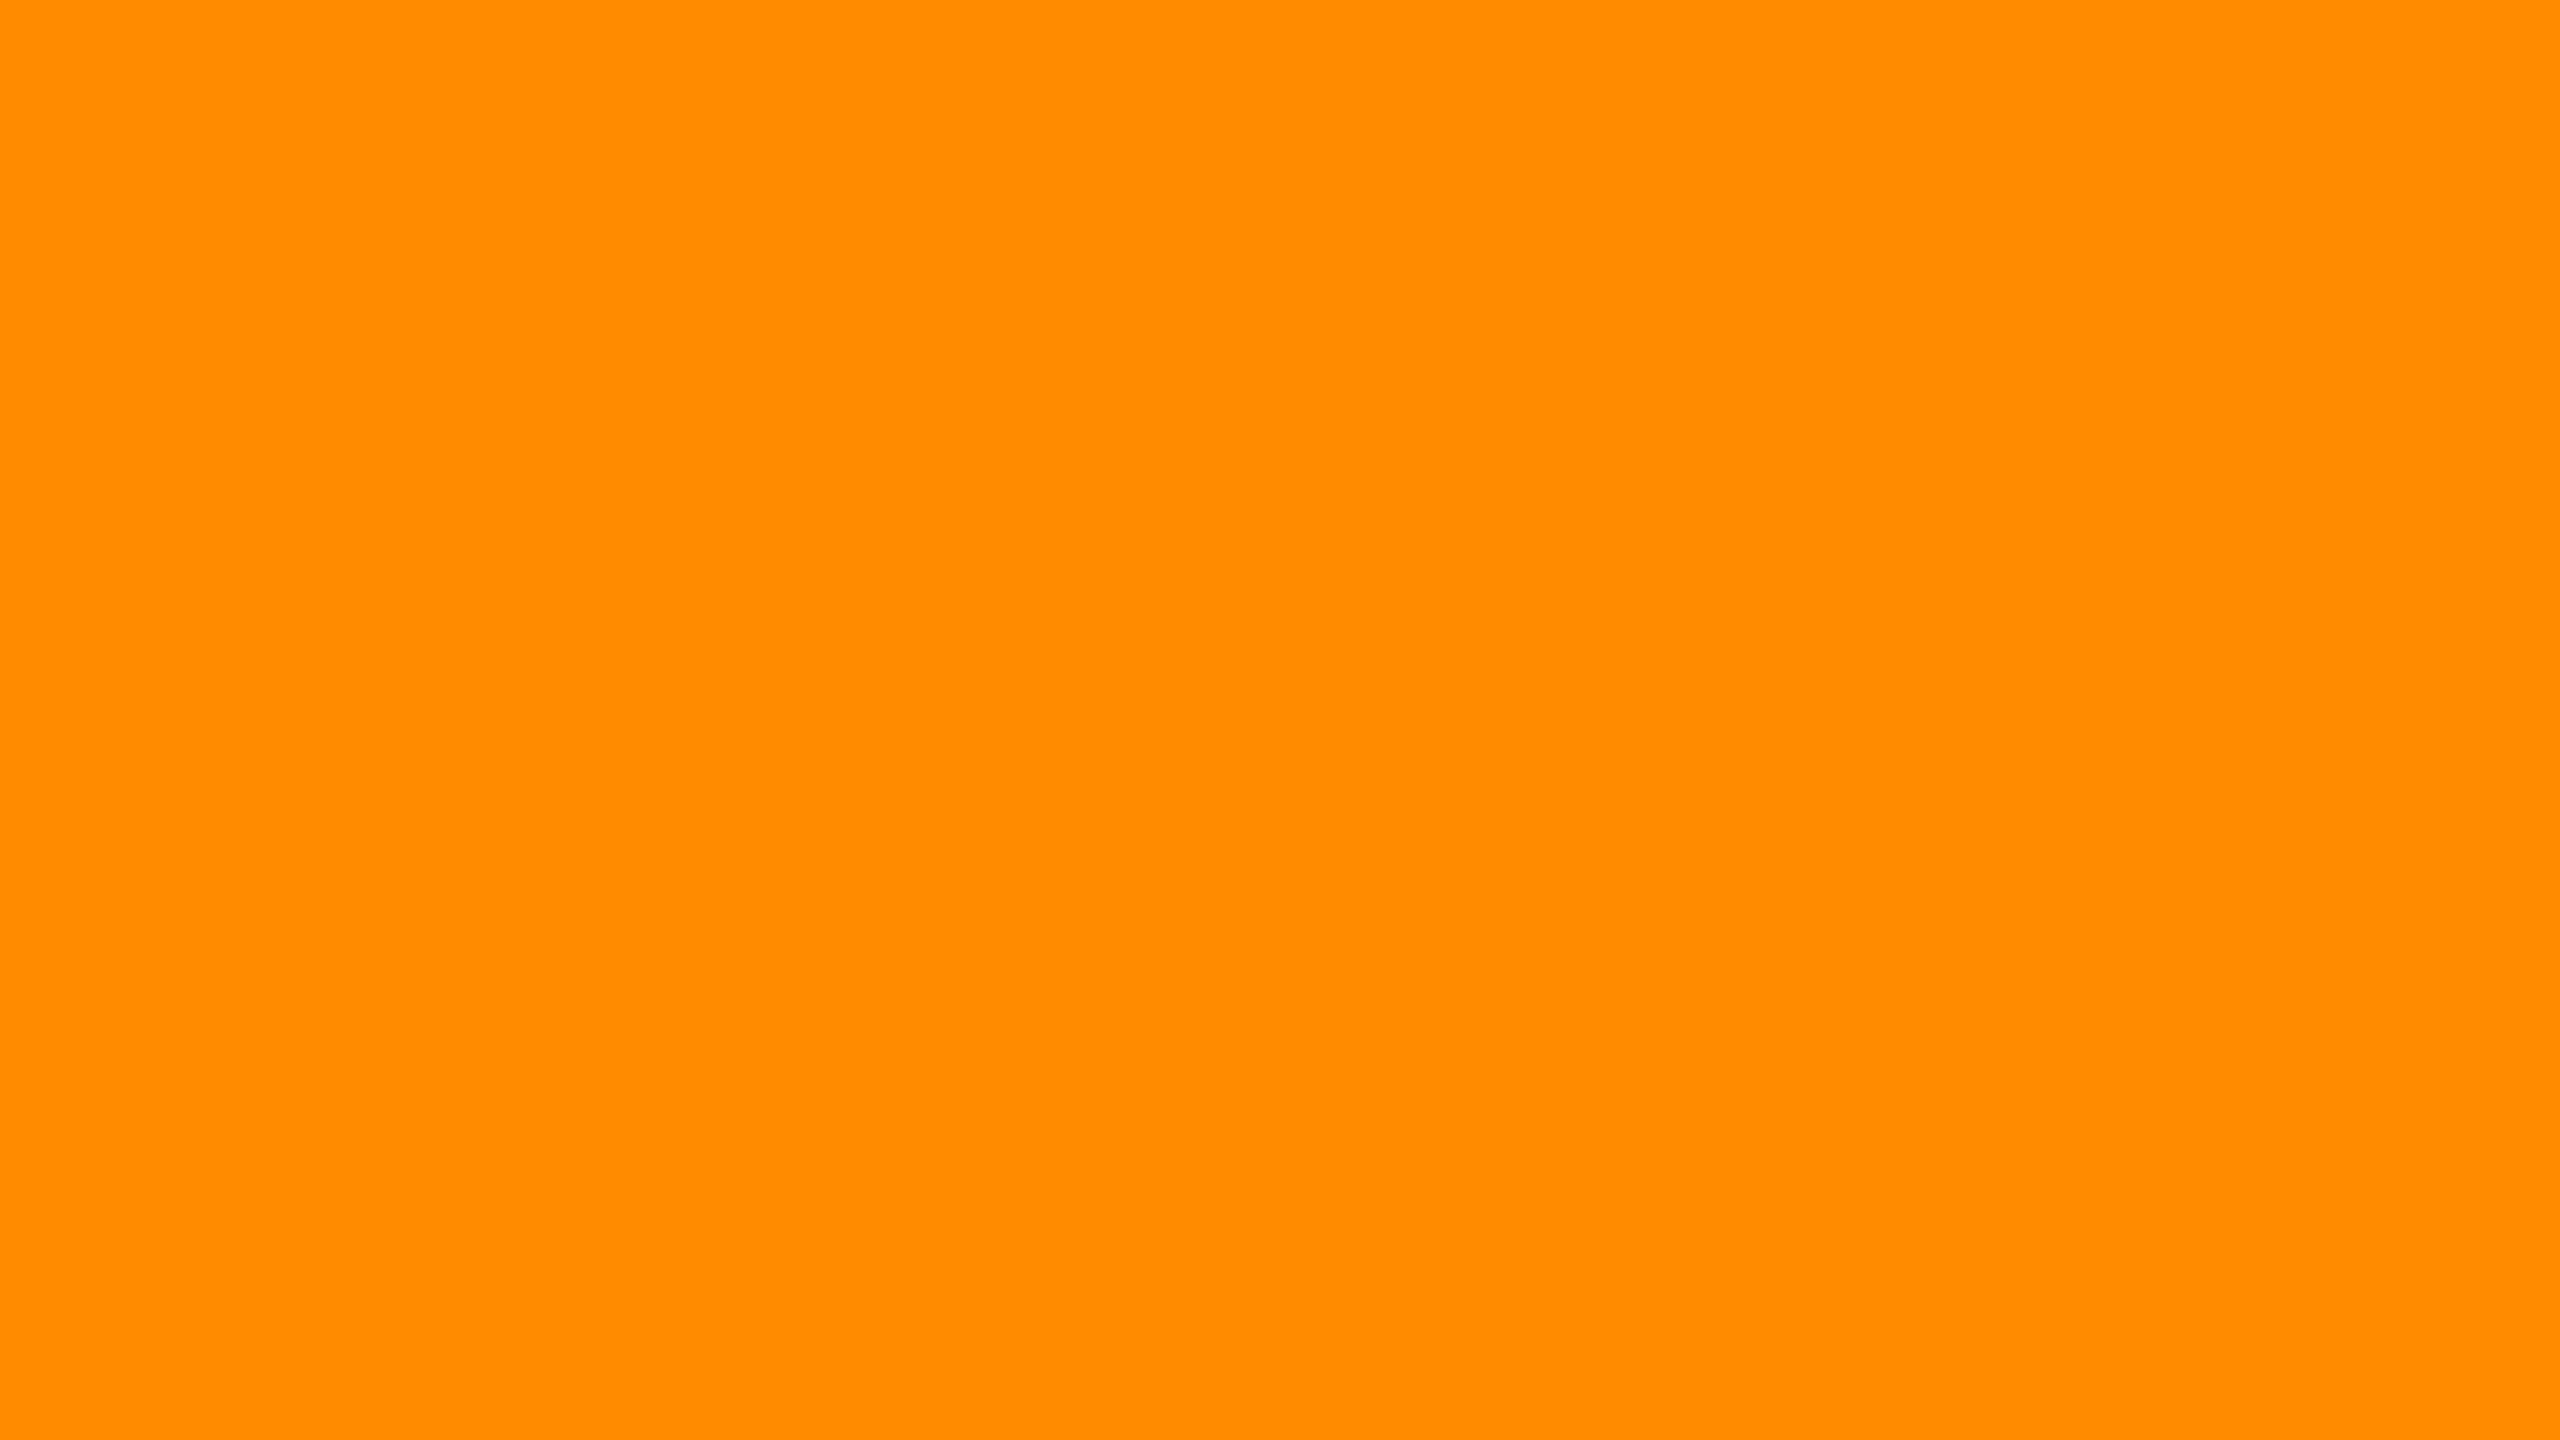 2560x1440 High Resolution Images Collection: Orange, by Carita Prichard